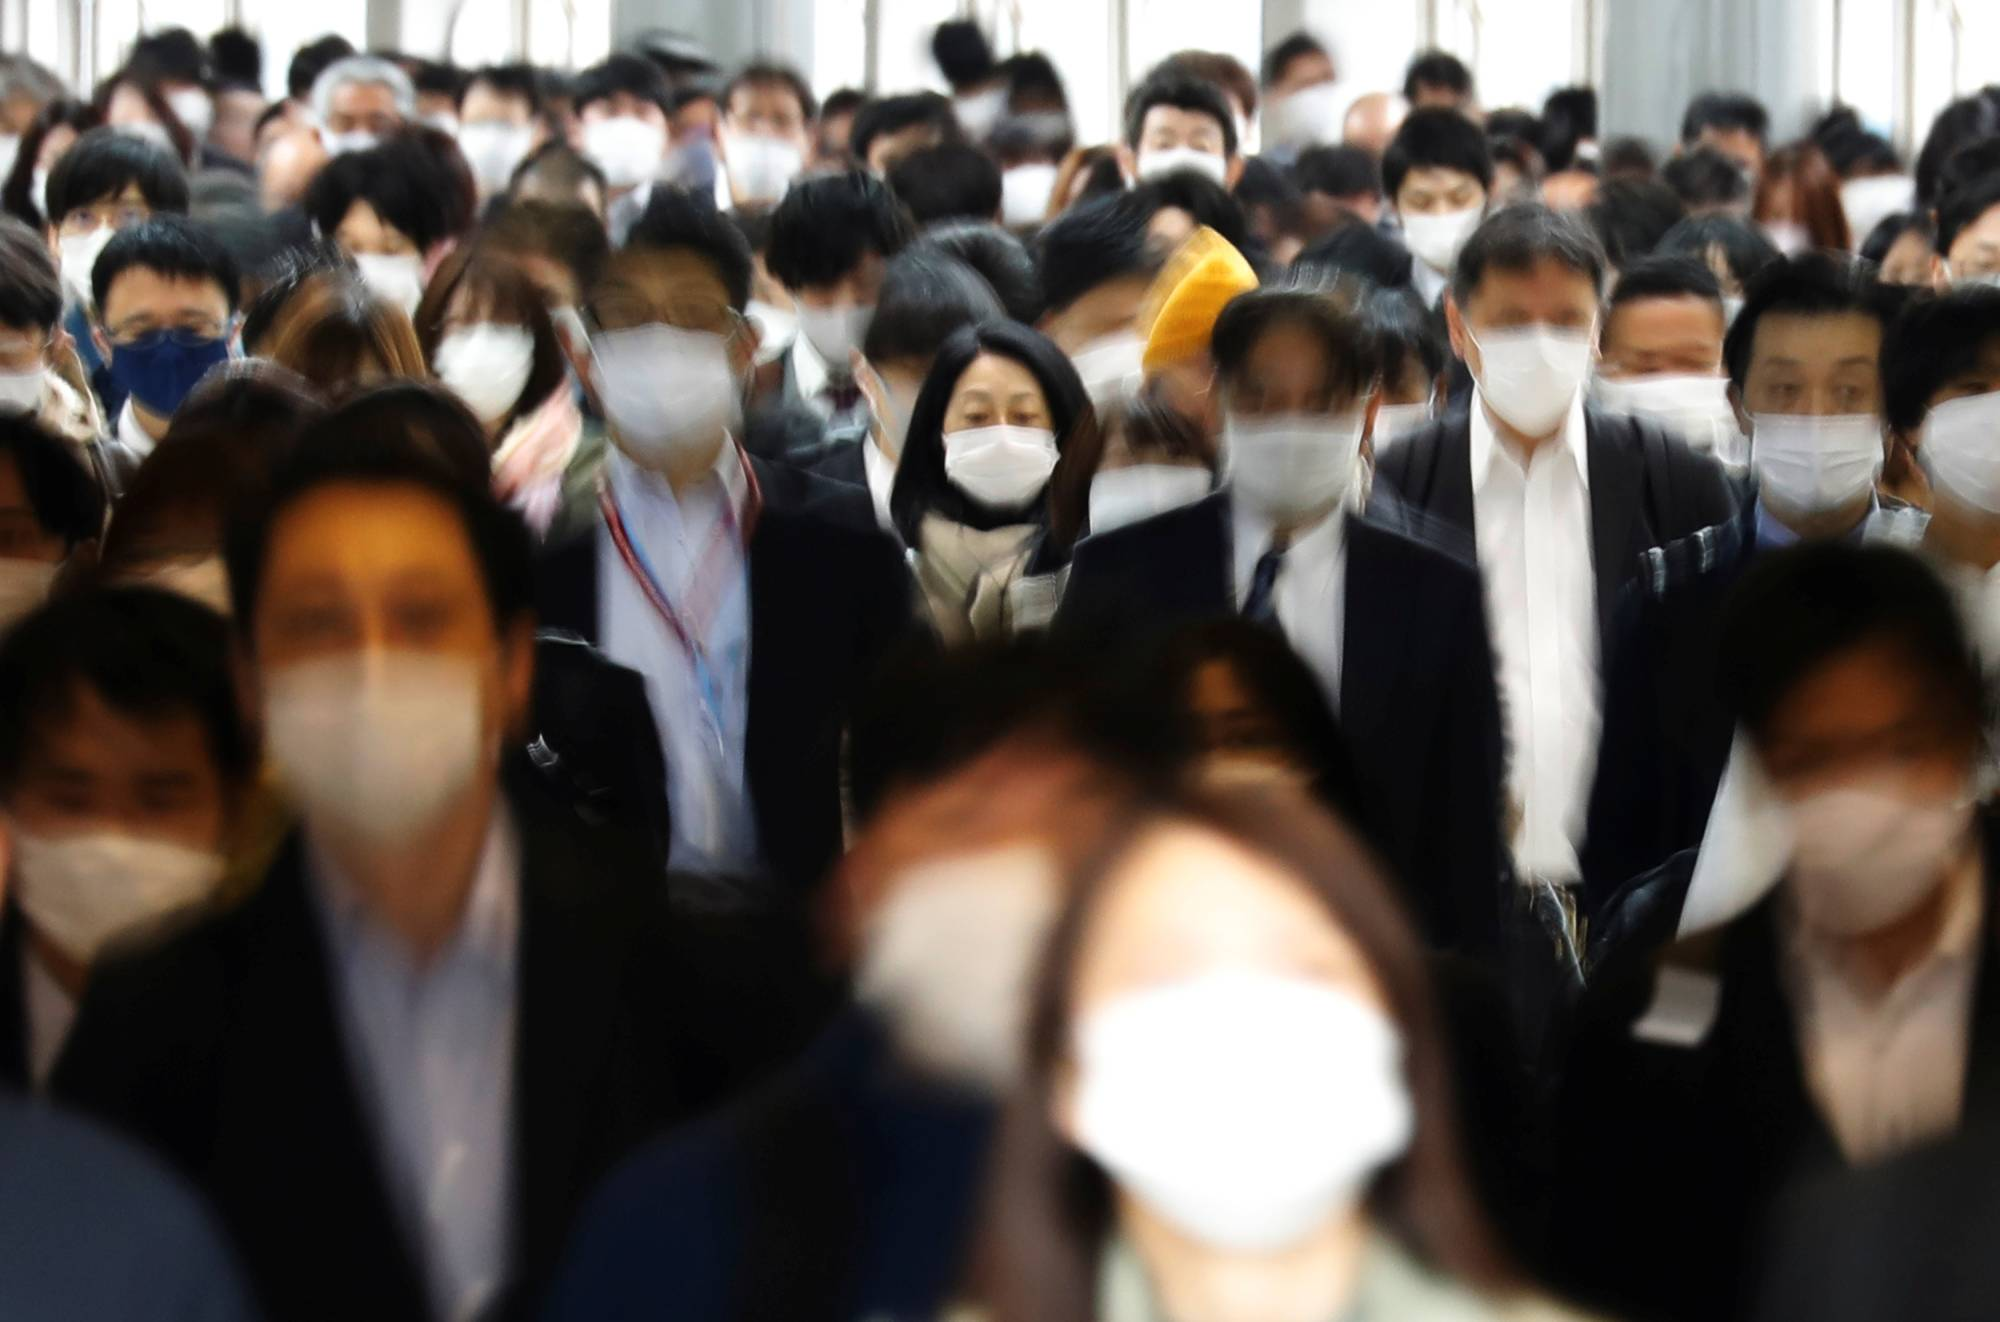 Sales of face masks in Japan rose 380% in 2020 year on year, according to figures compiled by market research firm Intage Inc. | REUTERS